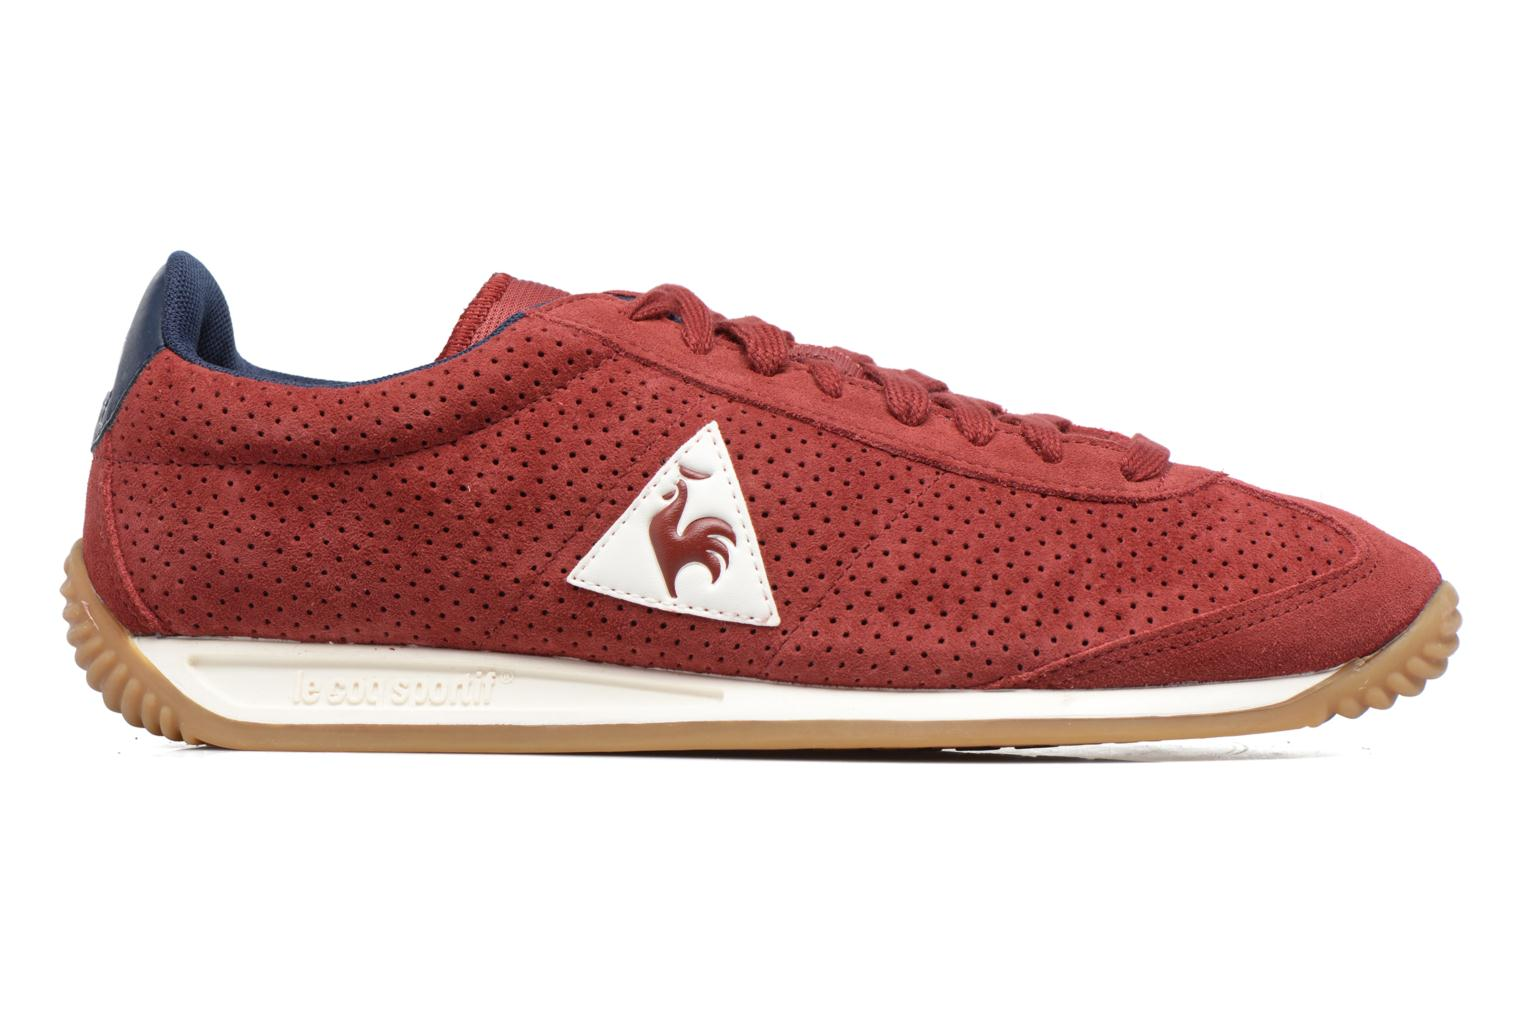 Baskets Le Coq Sportif Quartz Perforated Nubuck Rouge vue derrière